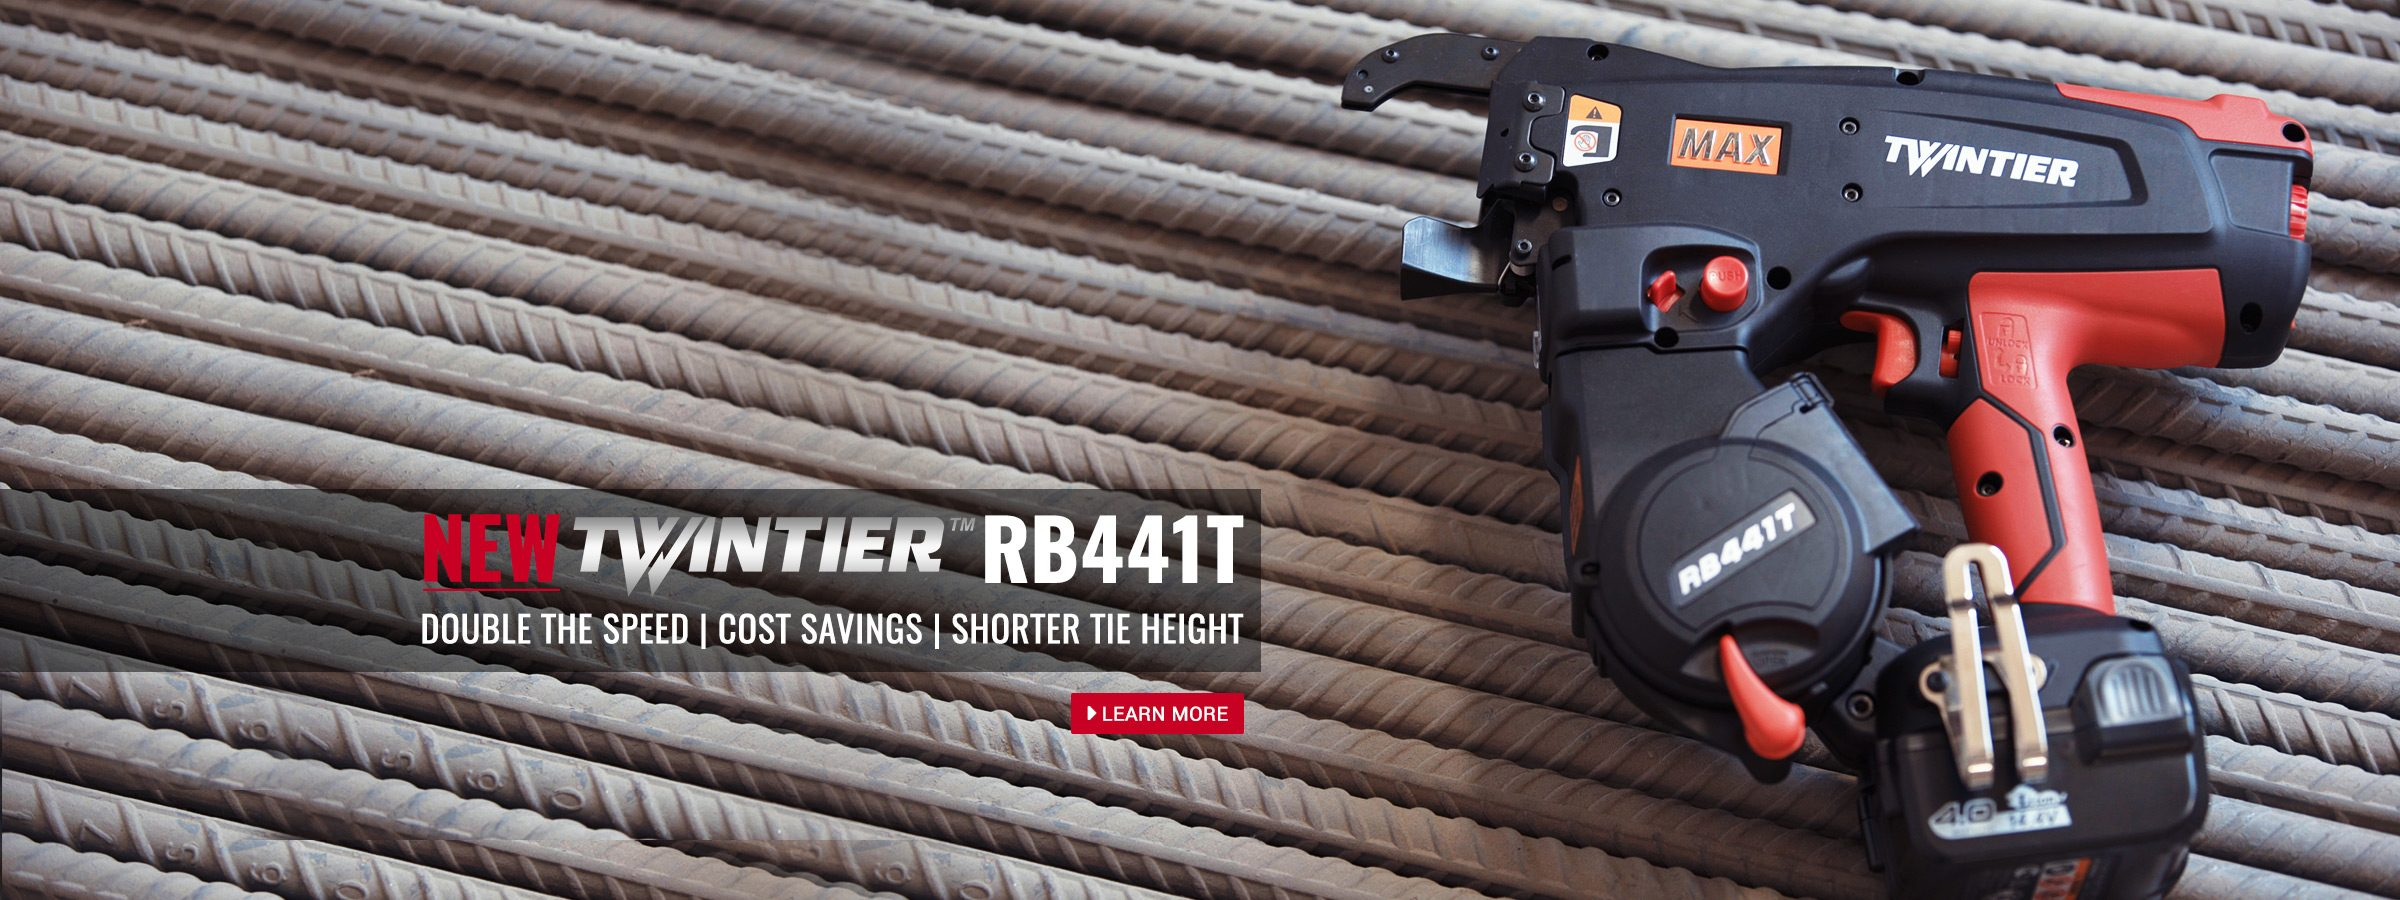 New Twintier RB441T